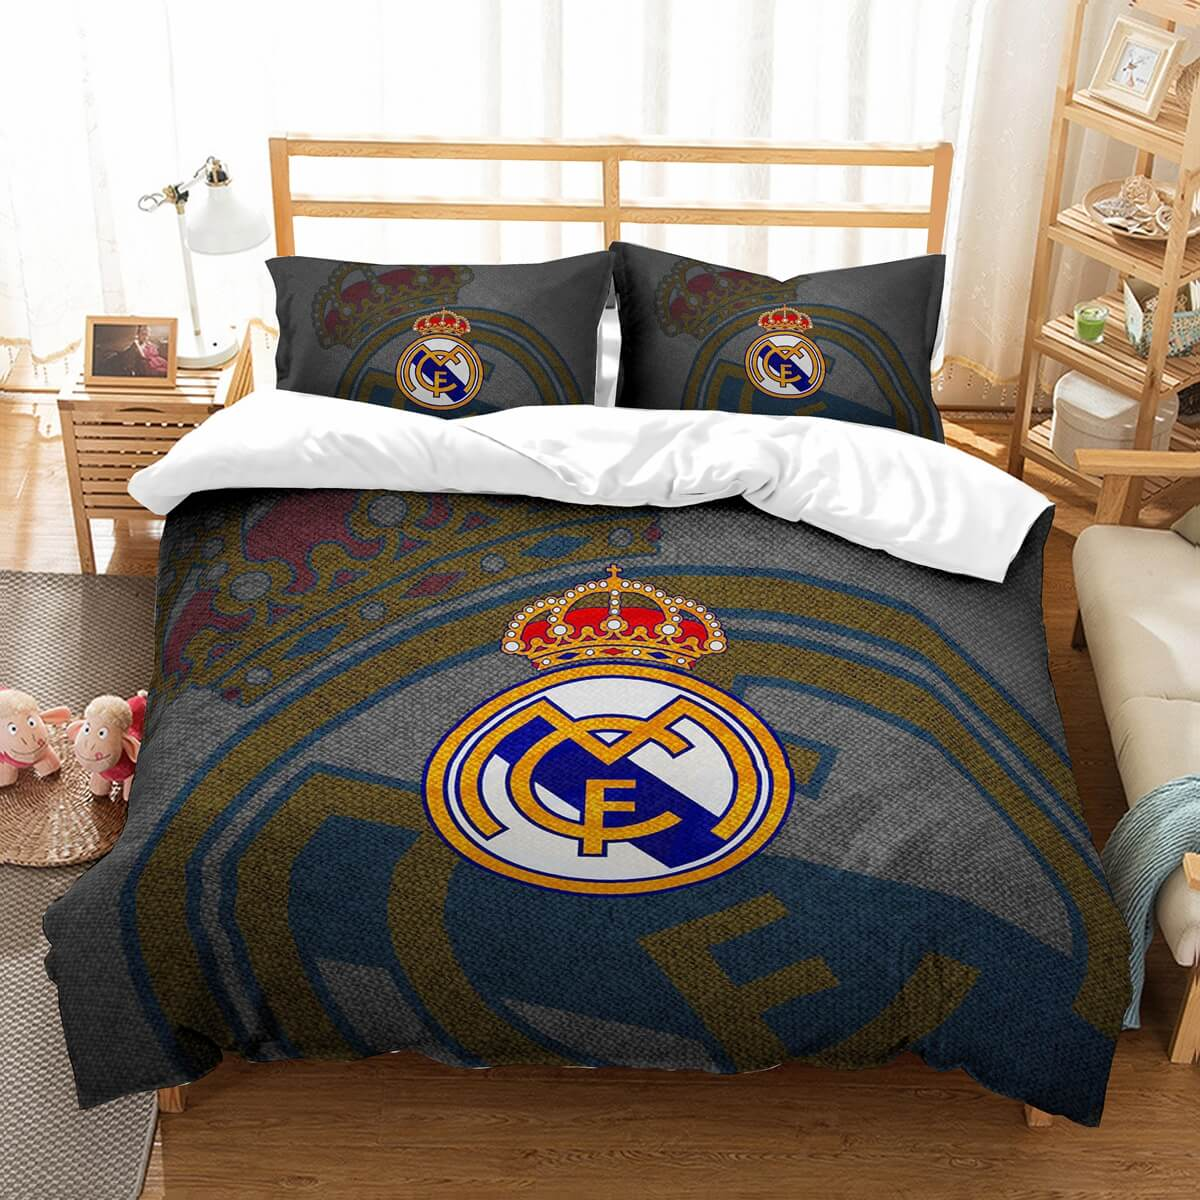 3D Customize Real Madrid C.F. Bedding Set Duvet Cover Set Bedroom Set Bedlinen